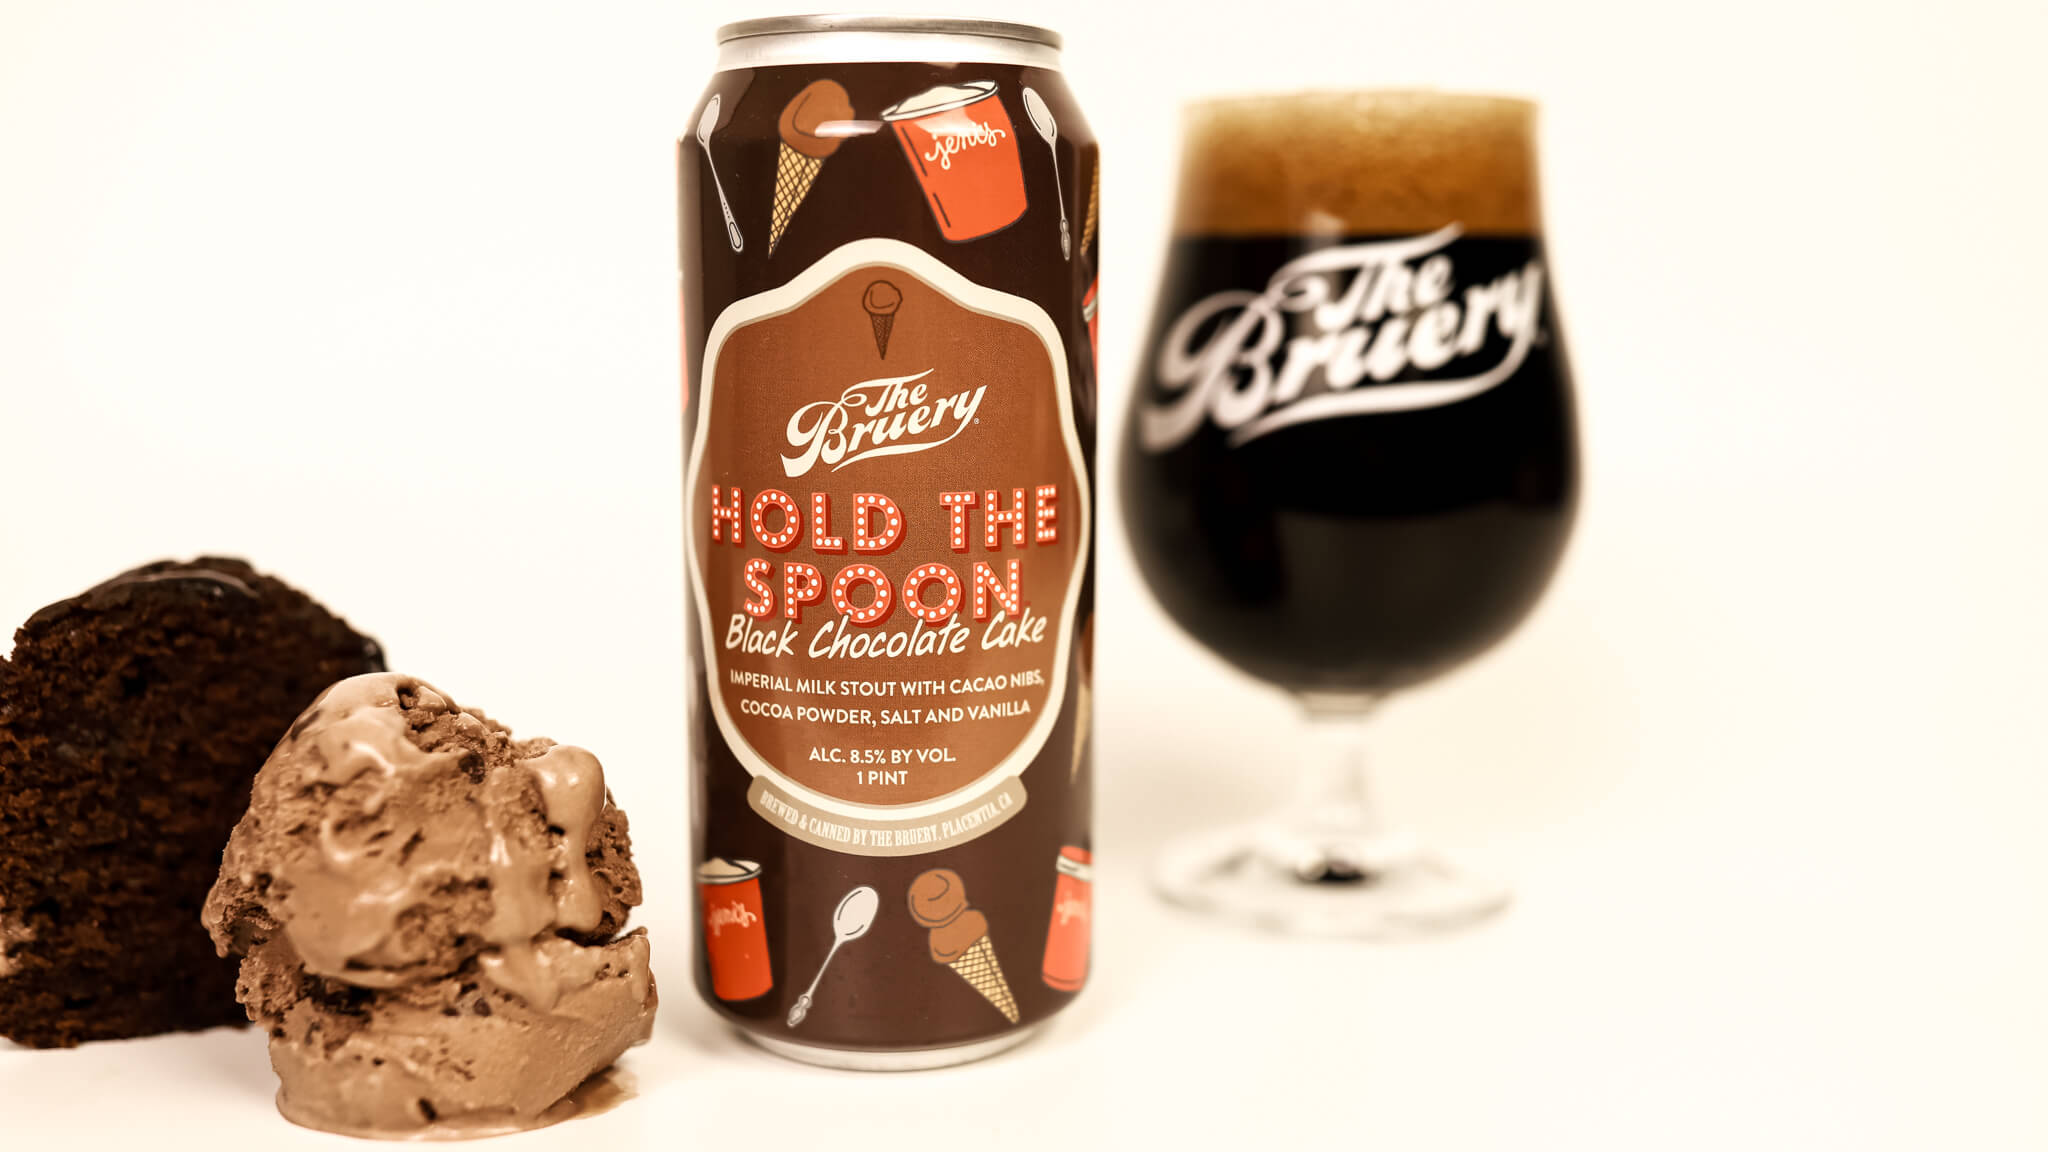 The Bruery announced the launch of their second collaboration with Jeni's Splendid Ice Creams — Hold The Spoon: Black Chocolate Cake.